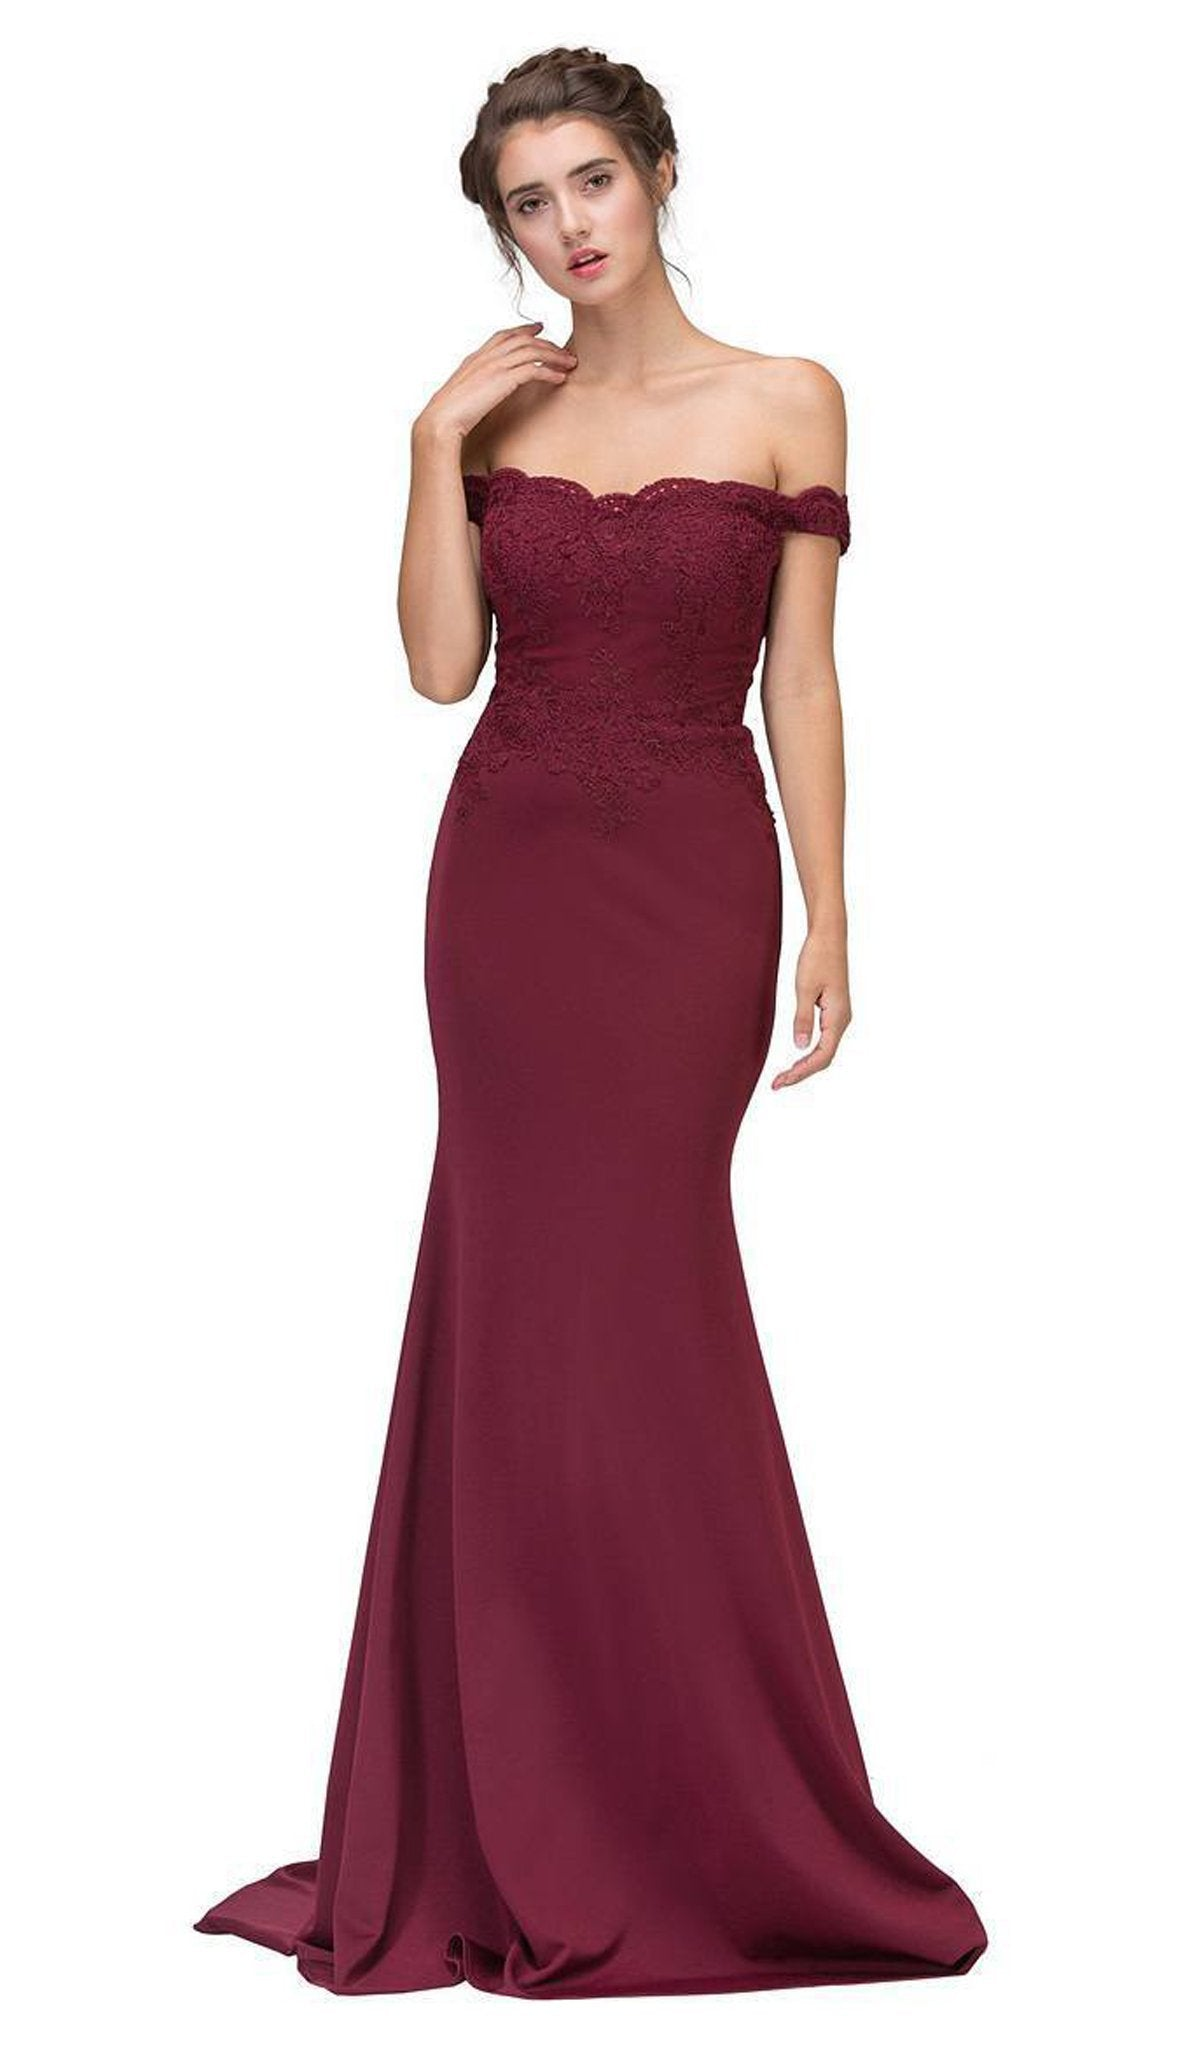 Eureka Fashion - 7100SC Lace Appliqued Bodice Jersey Mermaid Gown